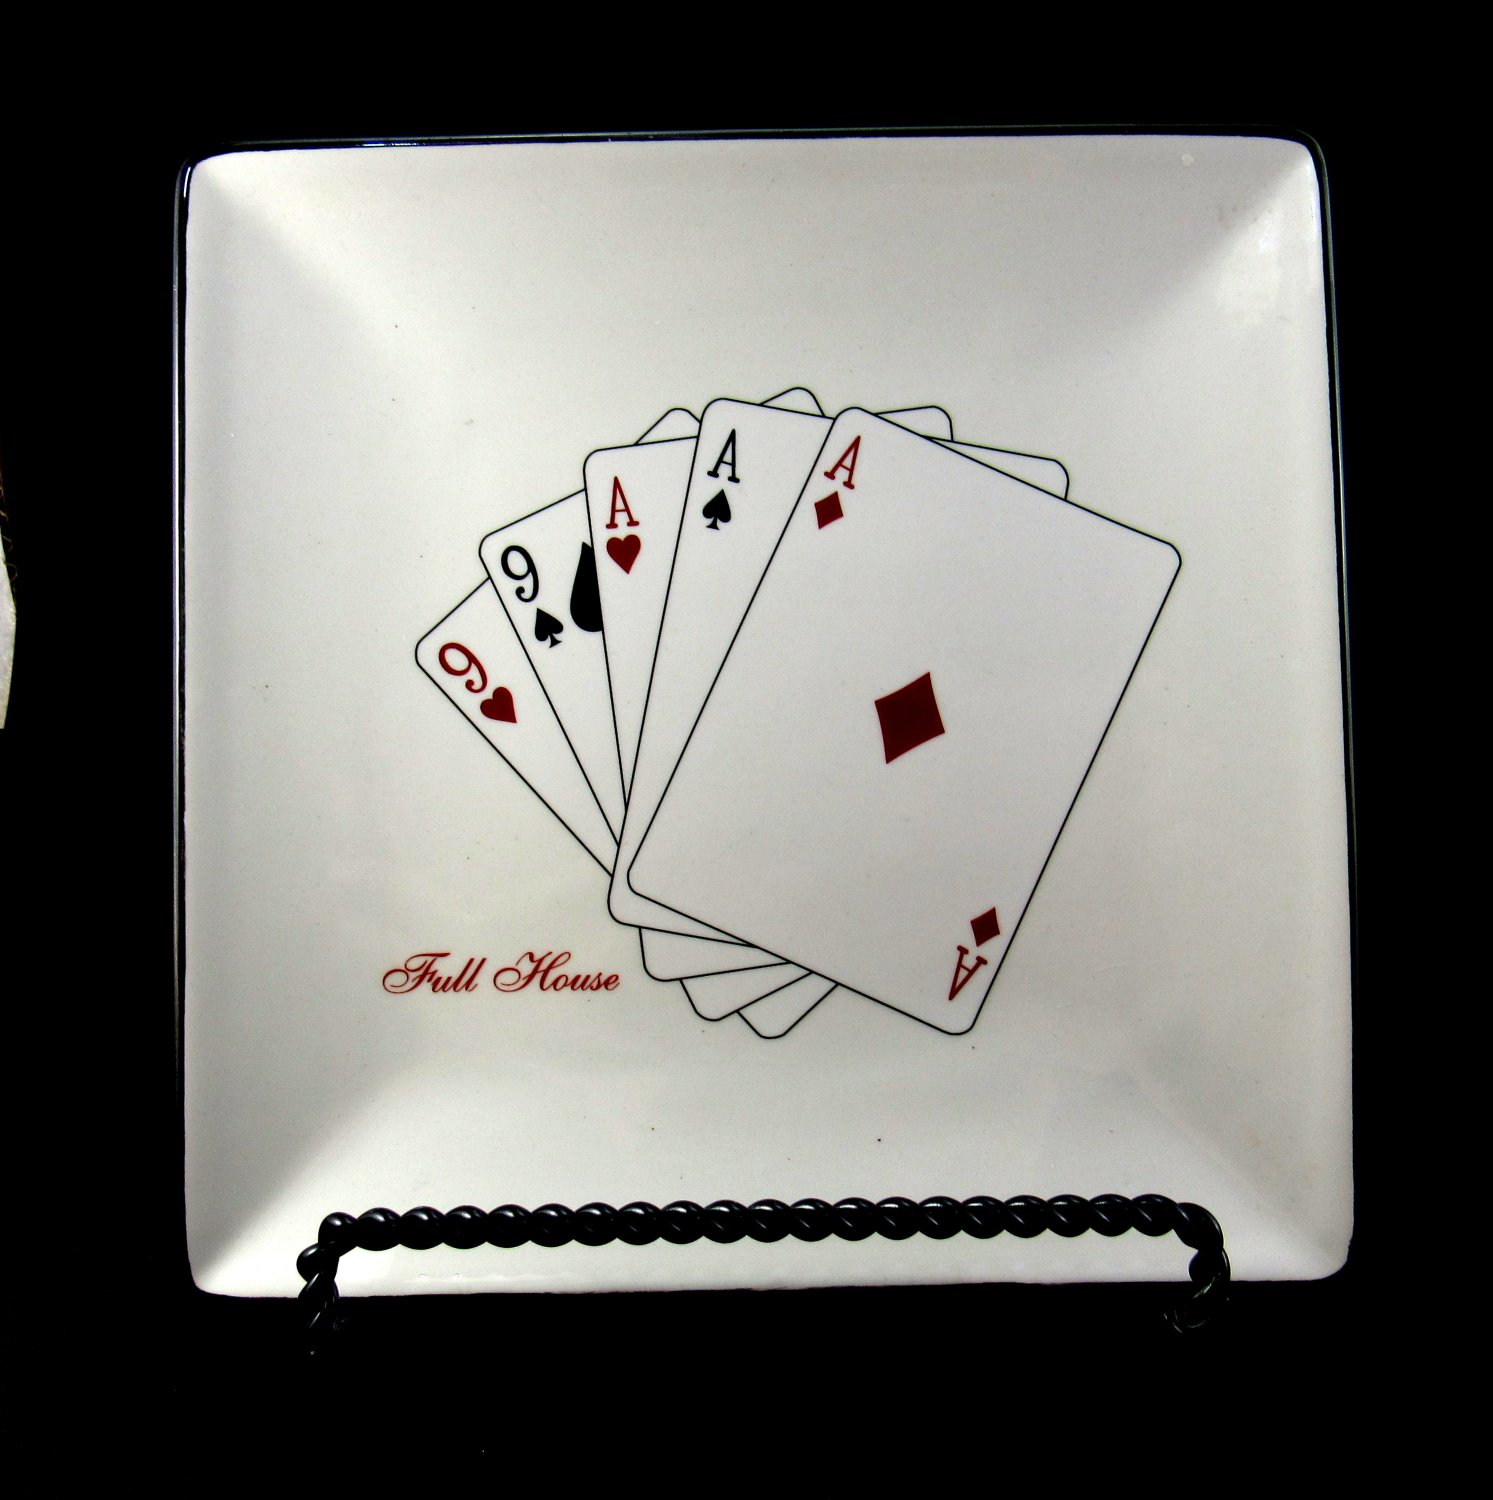 Full House Card Design Square Salad Plate By American Atelier 7 1/2 inches with Black Border